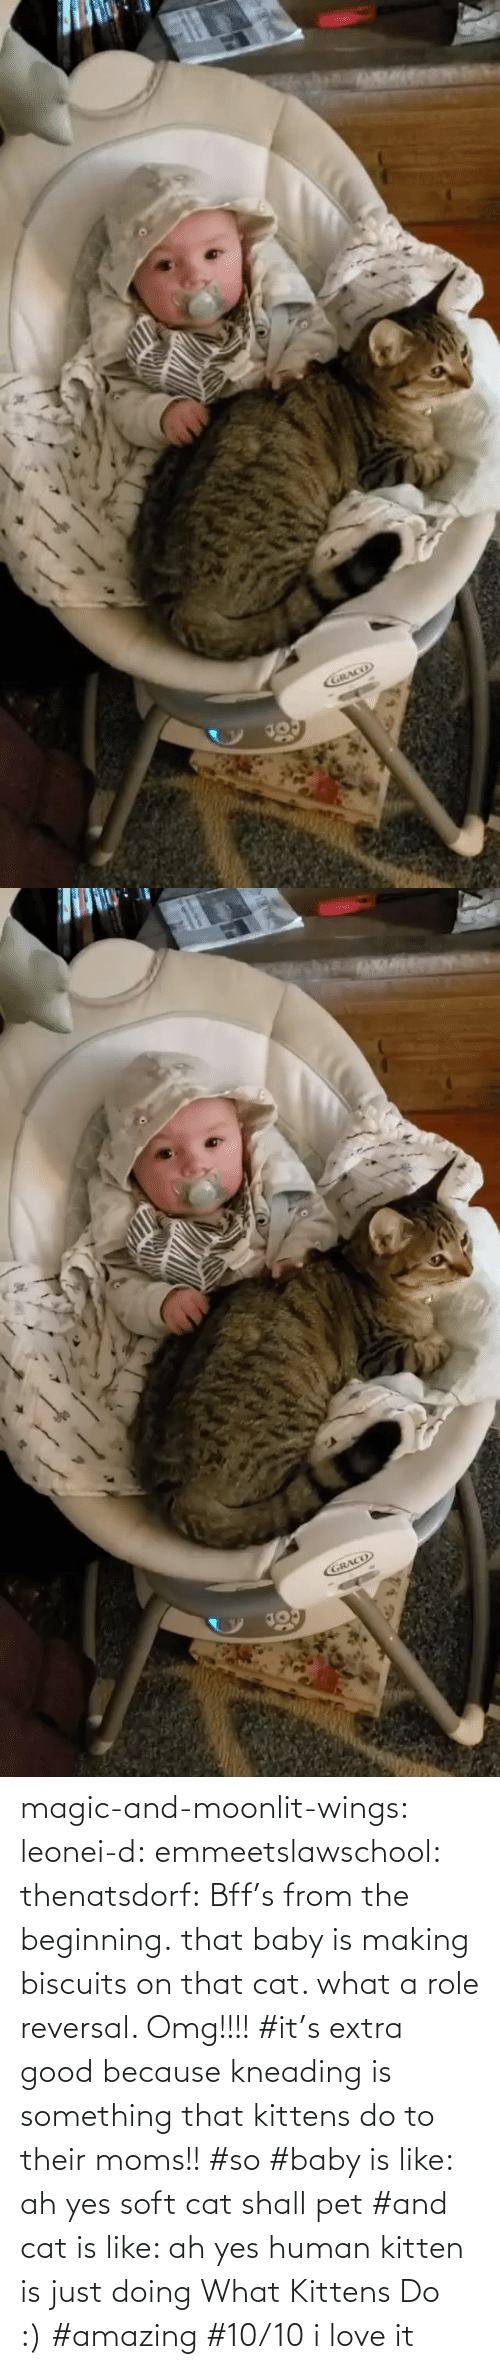 biscuits: magic-and-moonlit-wings: leonei-d:  emmeetslawschool:  thenatsdorf: Bff's from the beginning. that baby is making biscuits on that cat. what a role reversal.    Omg!!!!     #it's extra good because kneading is something that kittens do to their moms!! #so #baby is like: ah yes soft cat shall pet #and cat is like: ah yes human kitten is just doing What Kittens Do :) #amazing #10/10 i love it